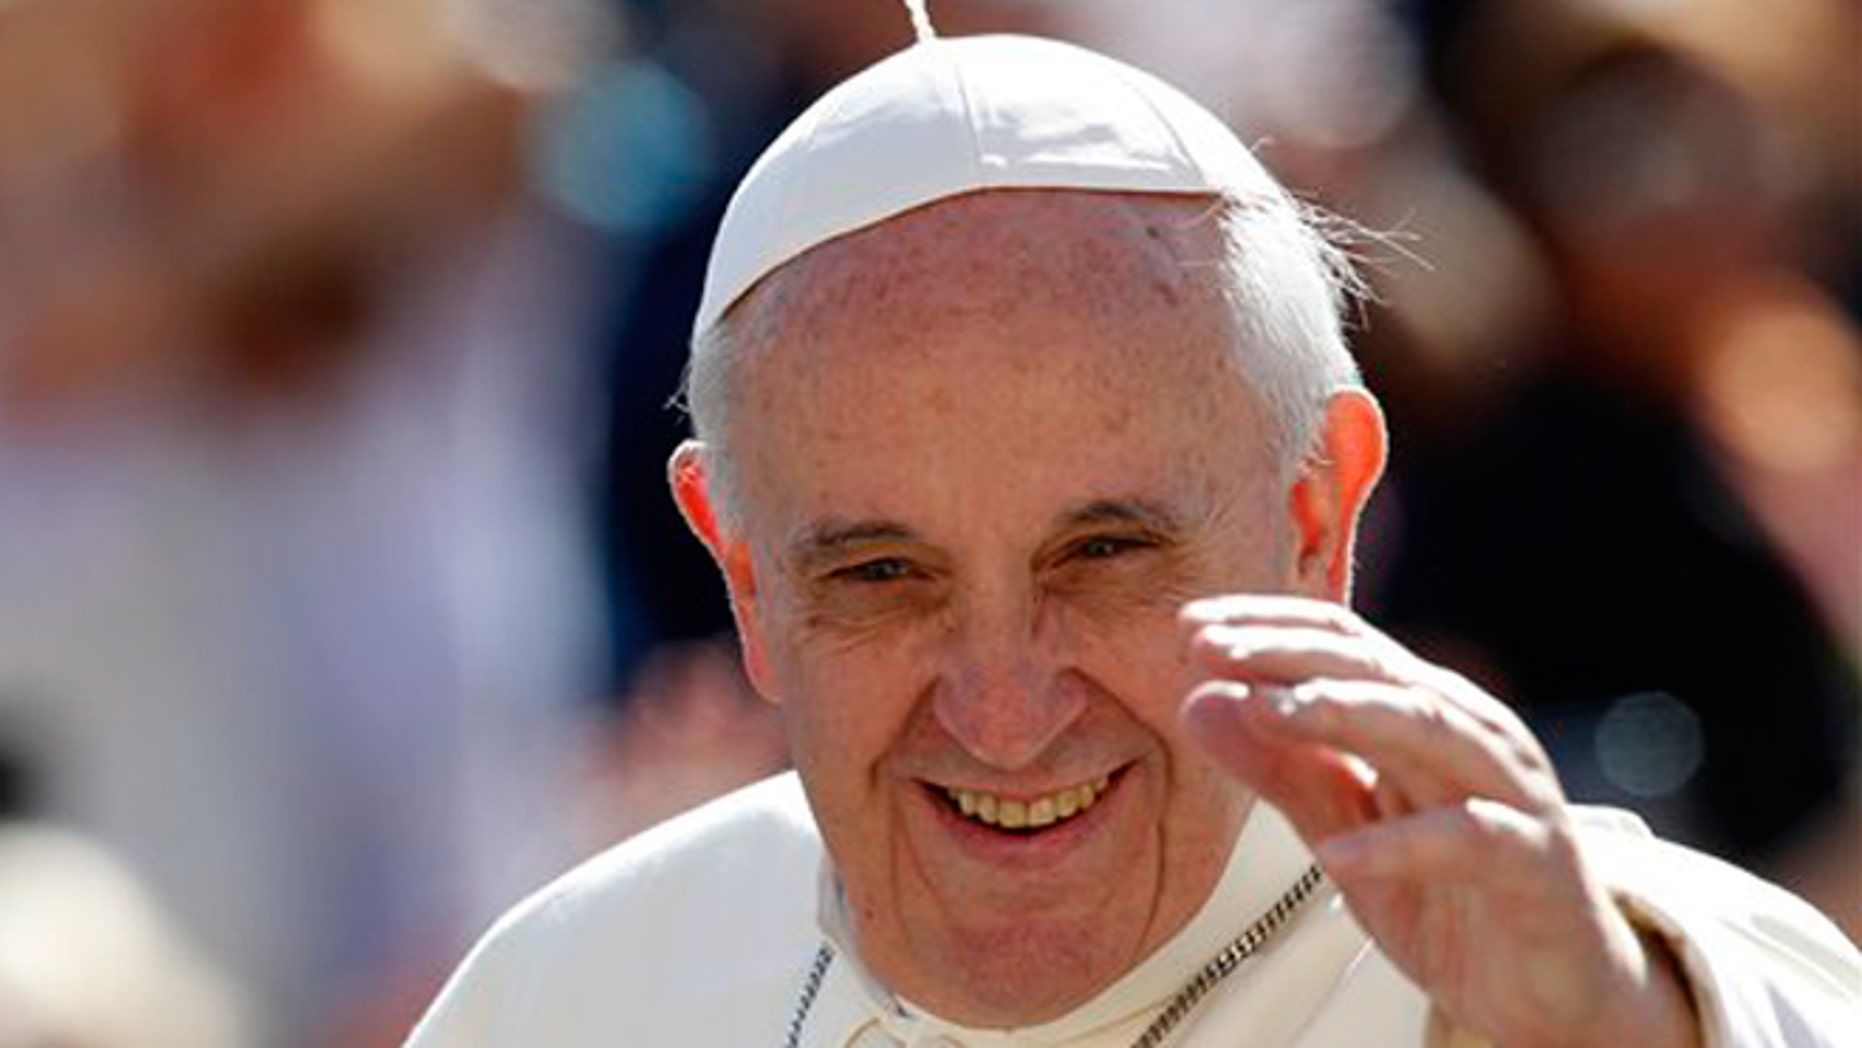 FILE -- Sept. 18, 2013: Pope Francis waves to faithful as he arrives for his weekly general audience in St. Peter's Square at the Vatican.